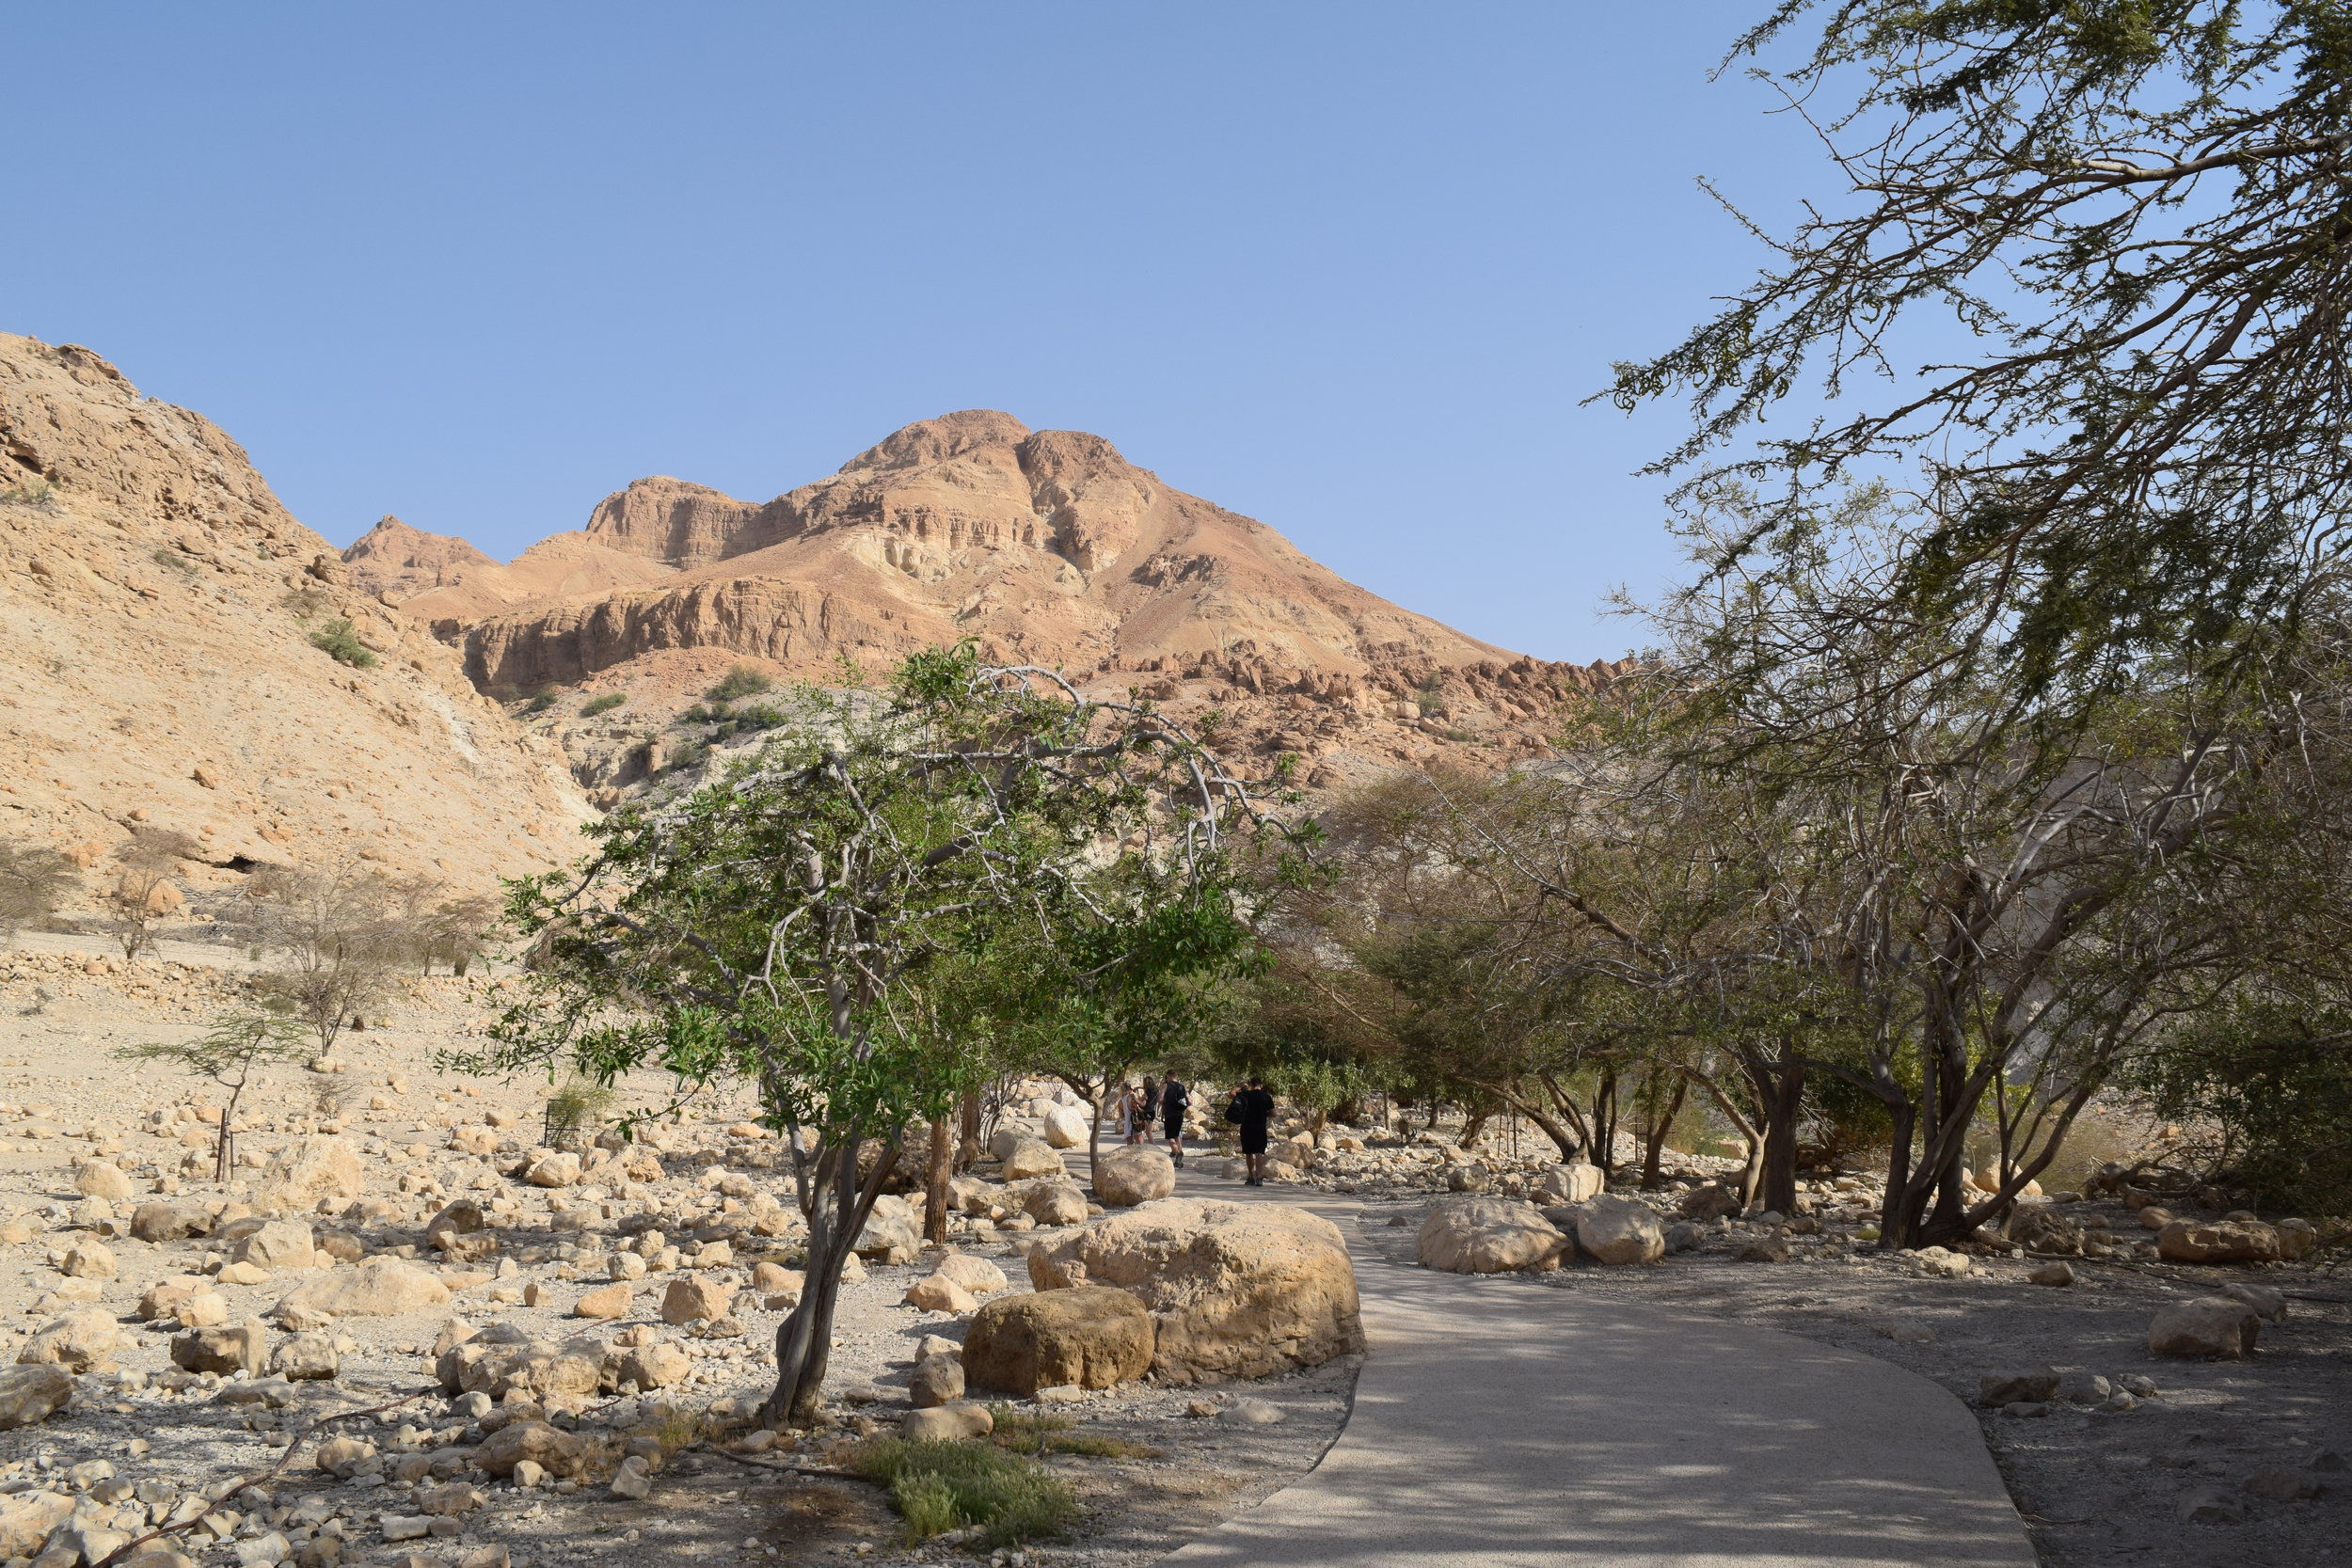 Entrance to Ein Gedi